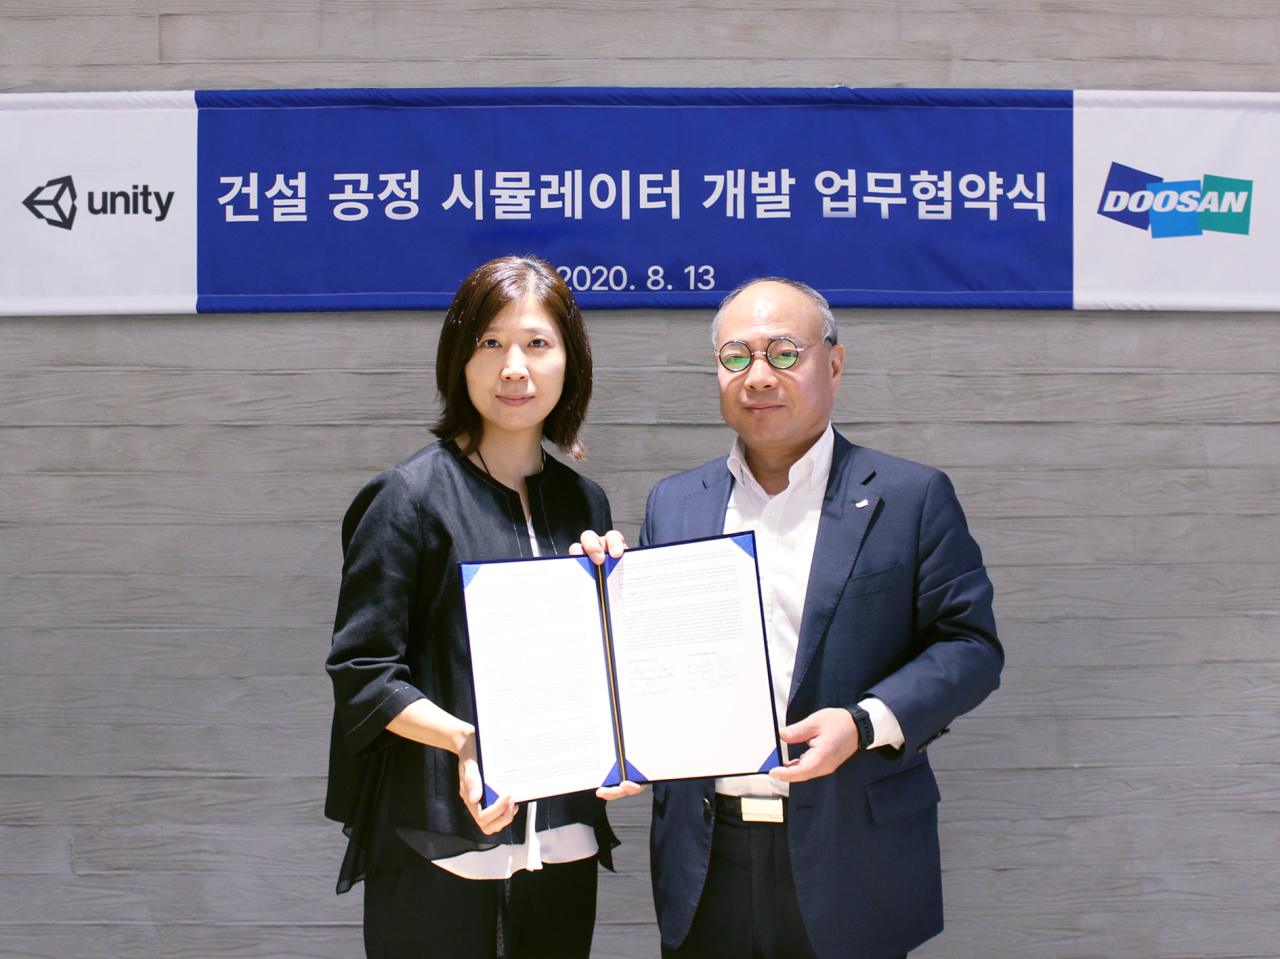 Unity Technologies Korea's Country Manager Kim In-suk (left) and Doosan Infracore Vice President Lee Dong-wook pose for a photo after signing a memorandum of understading to use Unity's game engine for checking the safety of Doosan's construction sites inside virtual reality. (Unity)